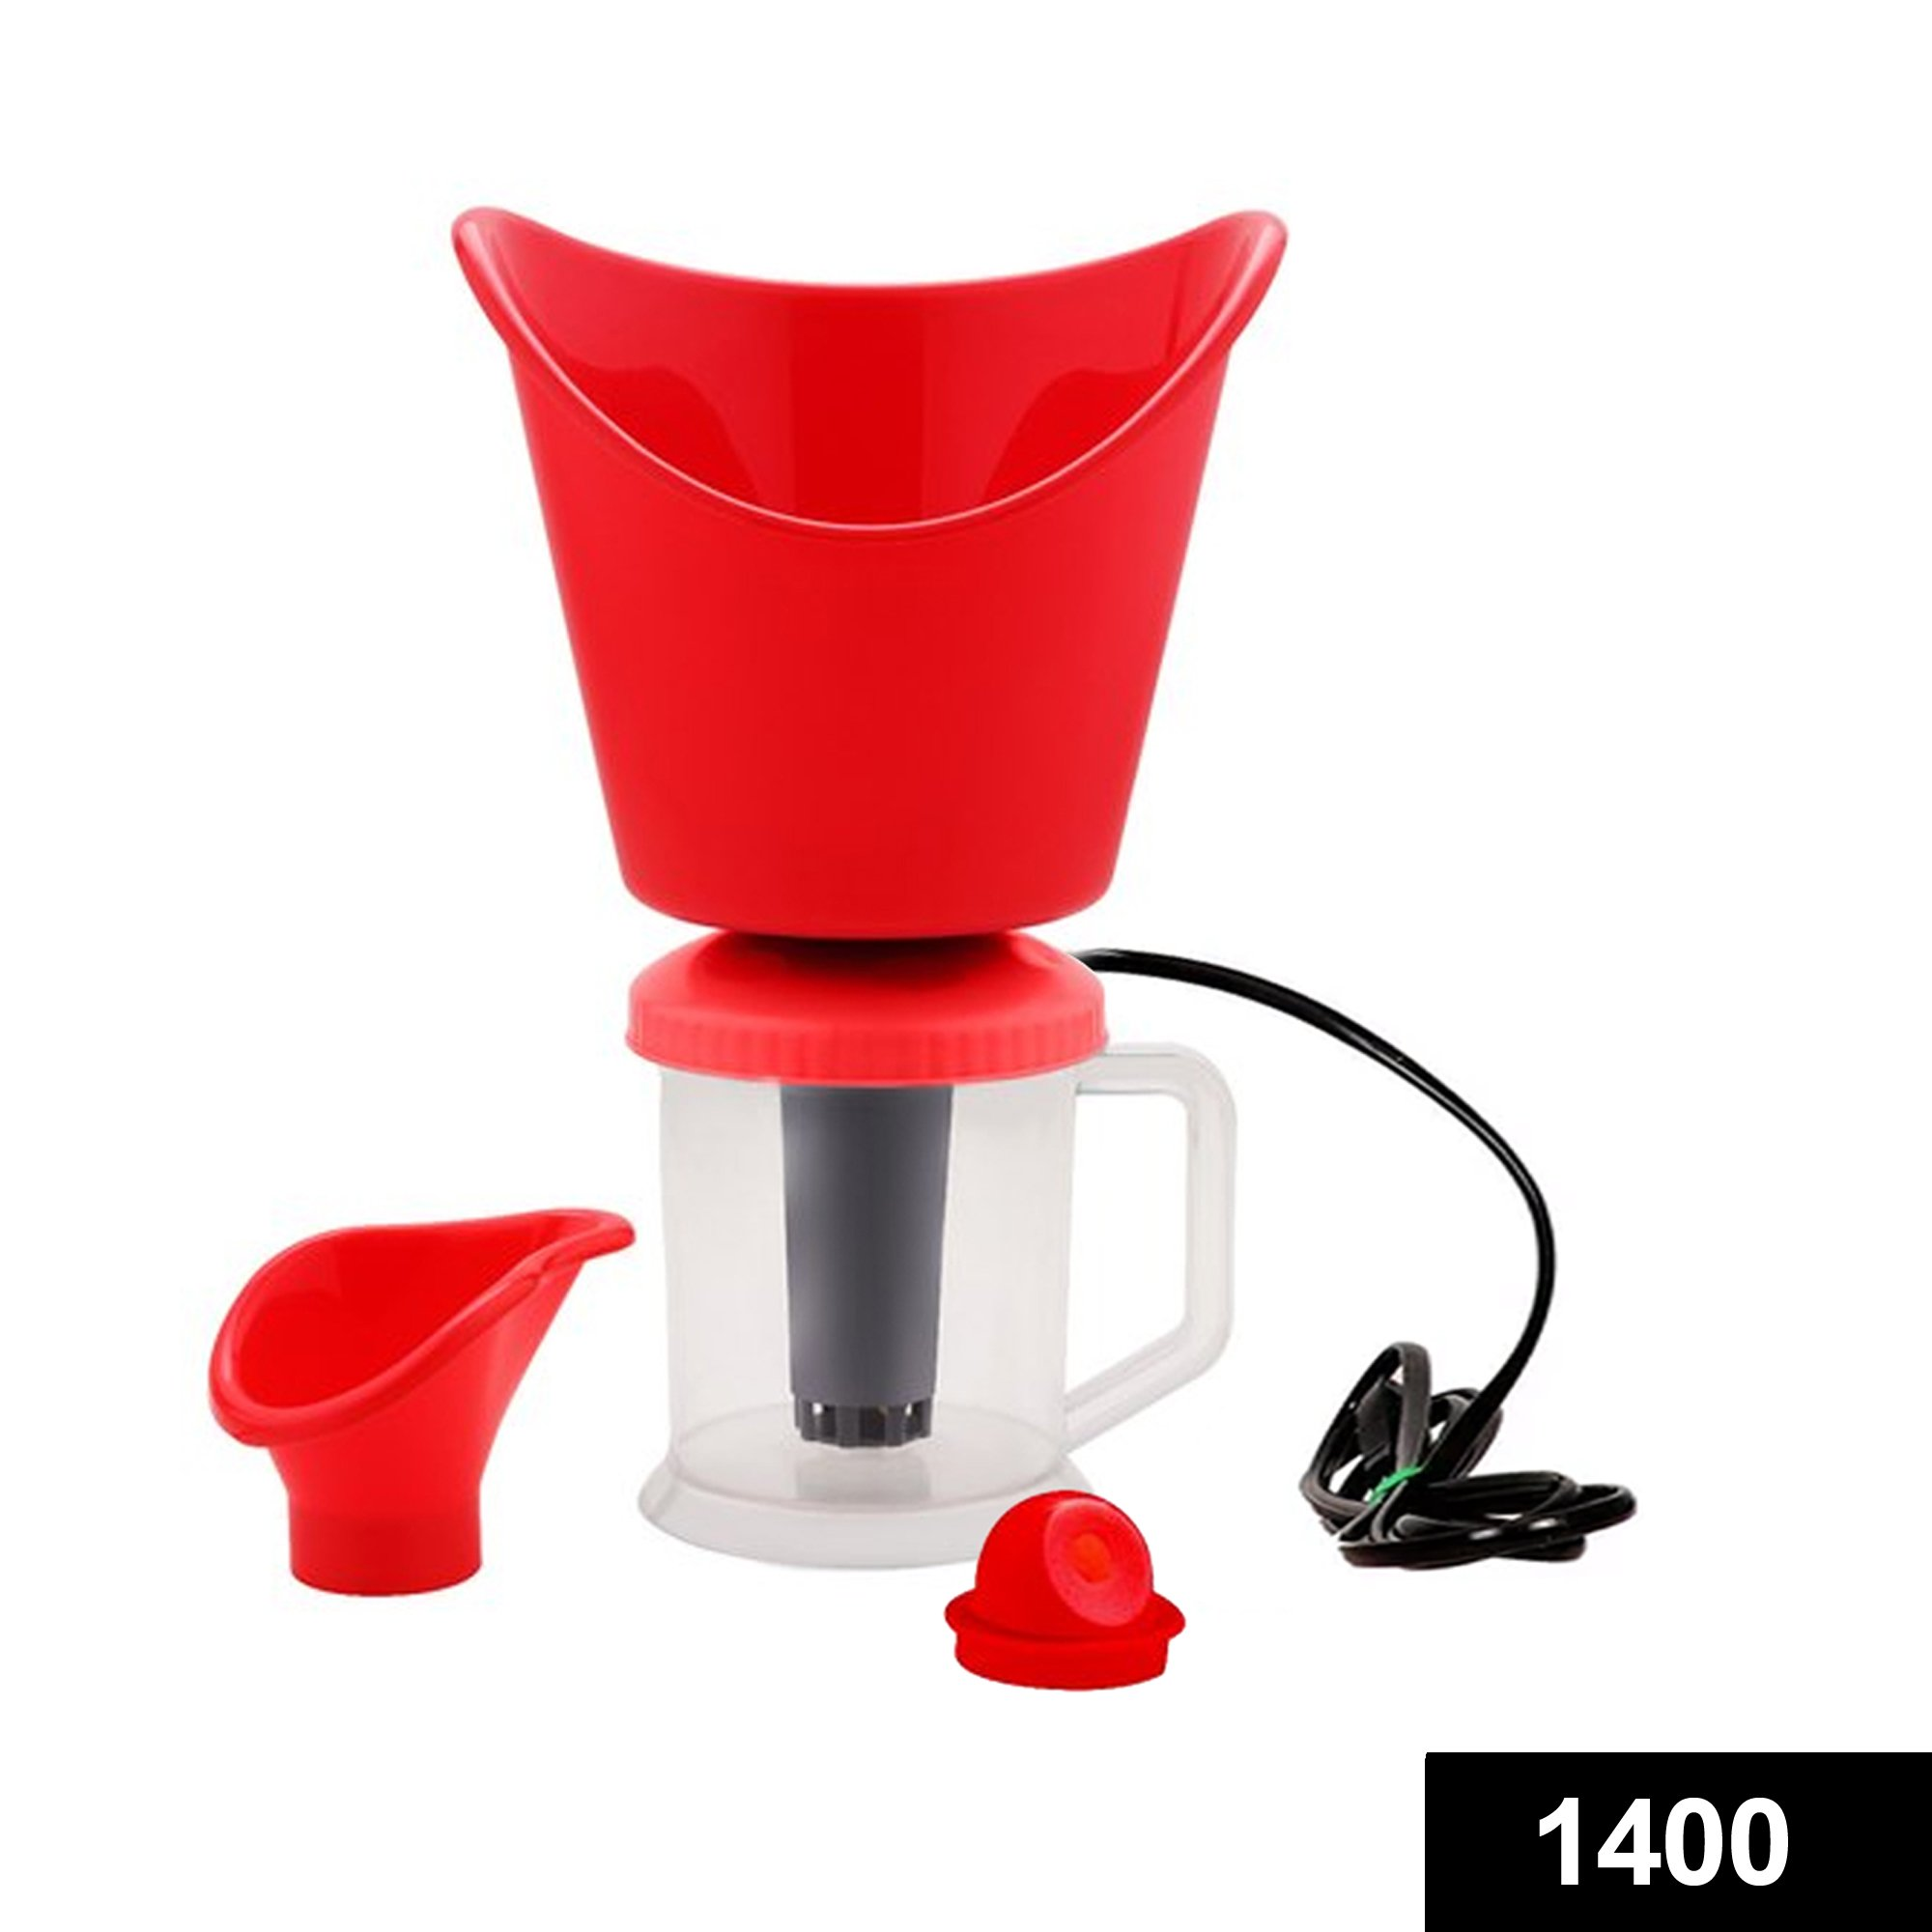 1400 Premium 3 in 1 Vaporiser steamer for cough and cold -